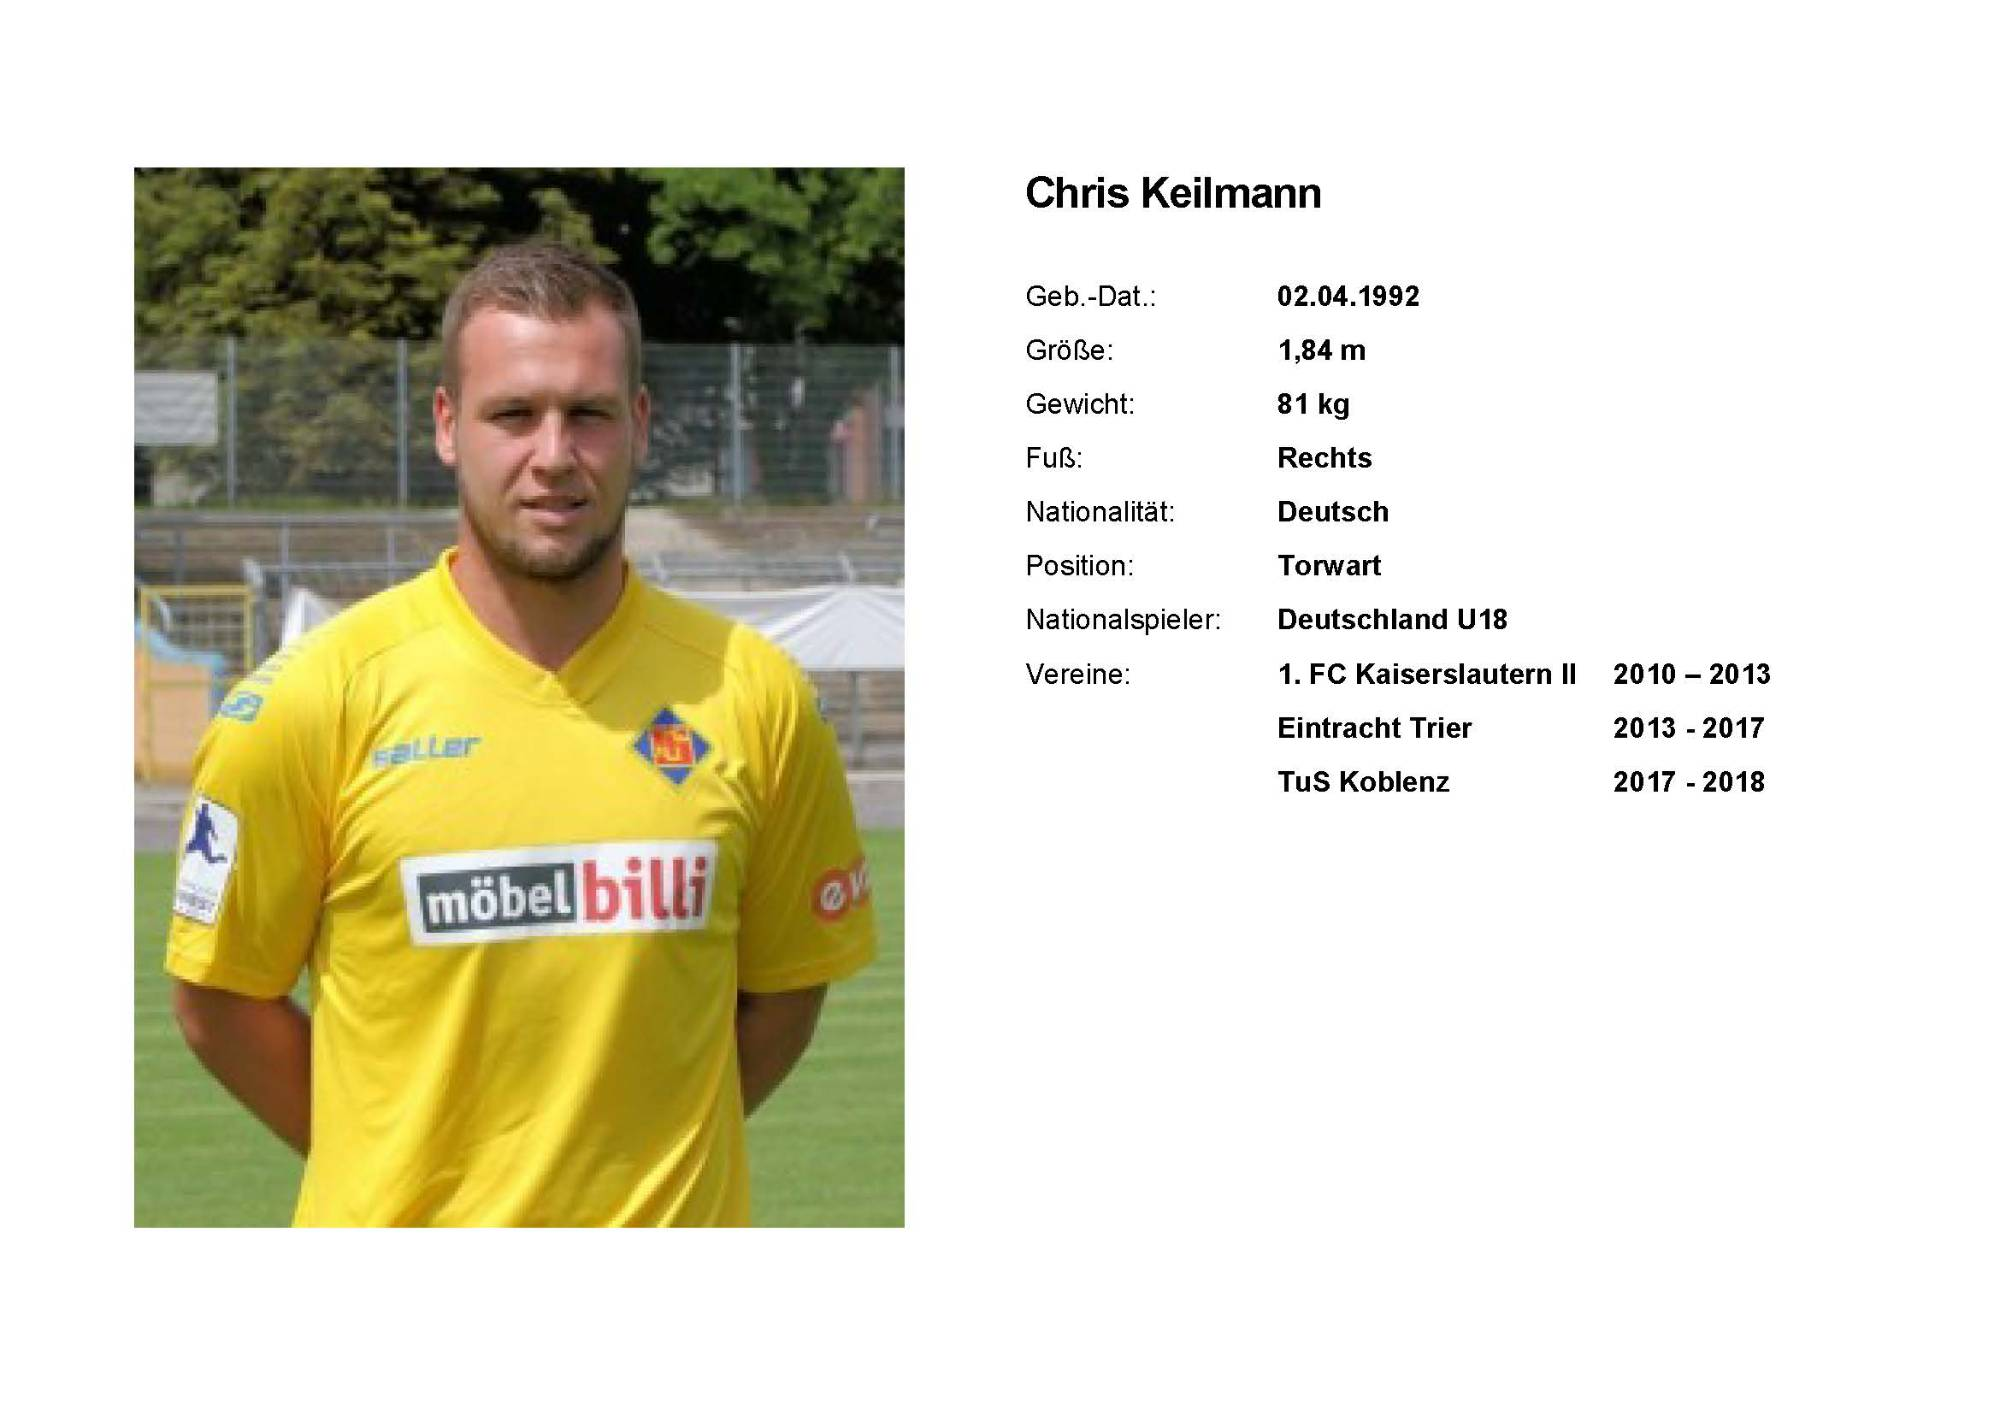 Chris Keilmann, Torwart